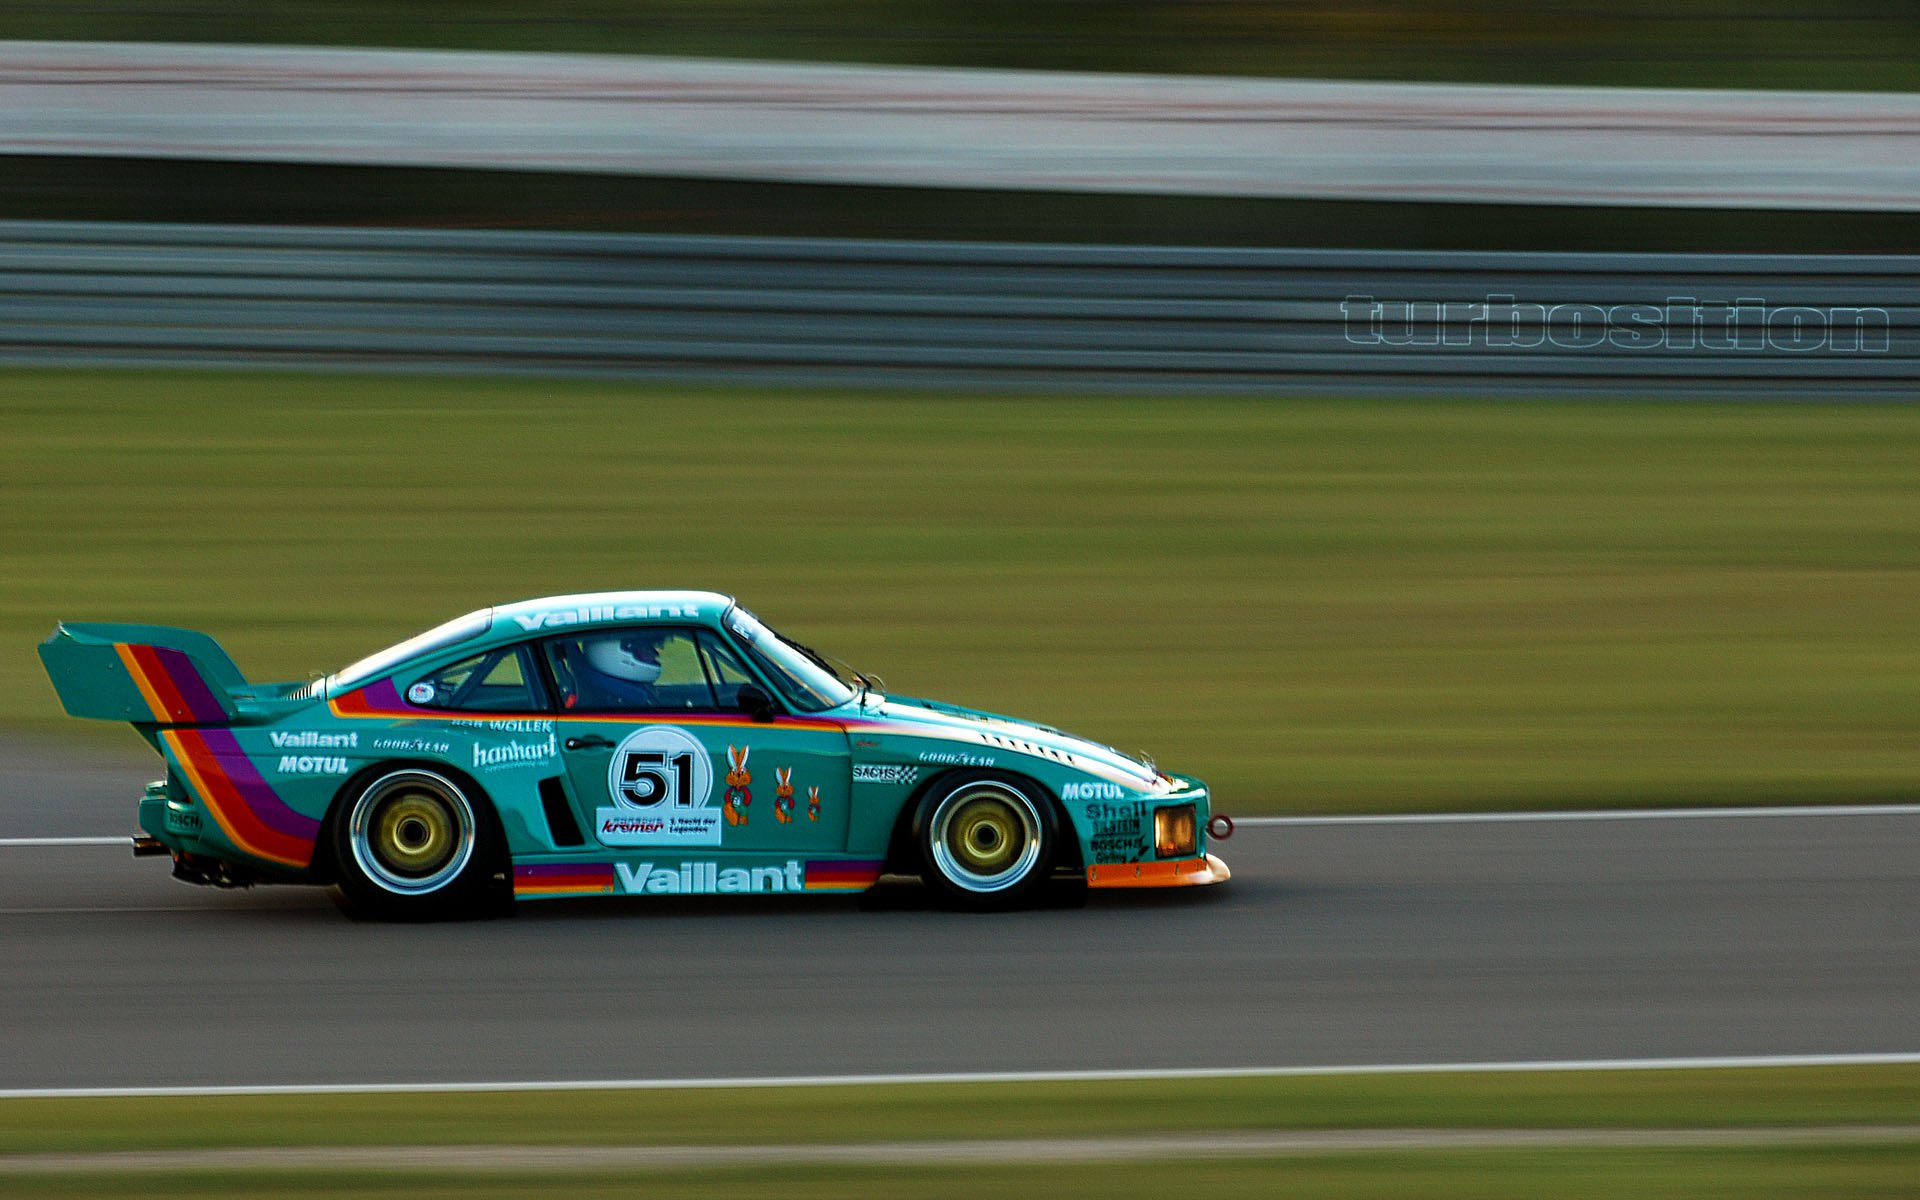 Porsche 930 For Sale >> kremer-porsche 935 // Porsche of the month: 2014-04 // TurboSition